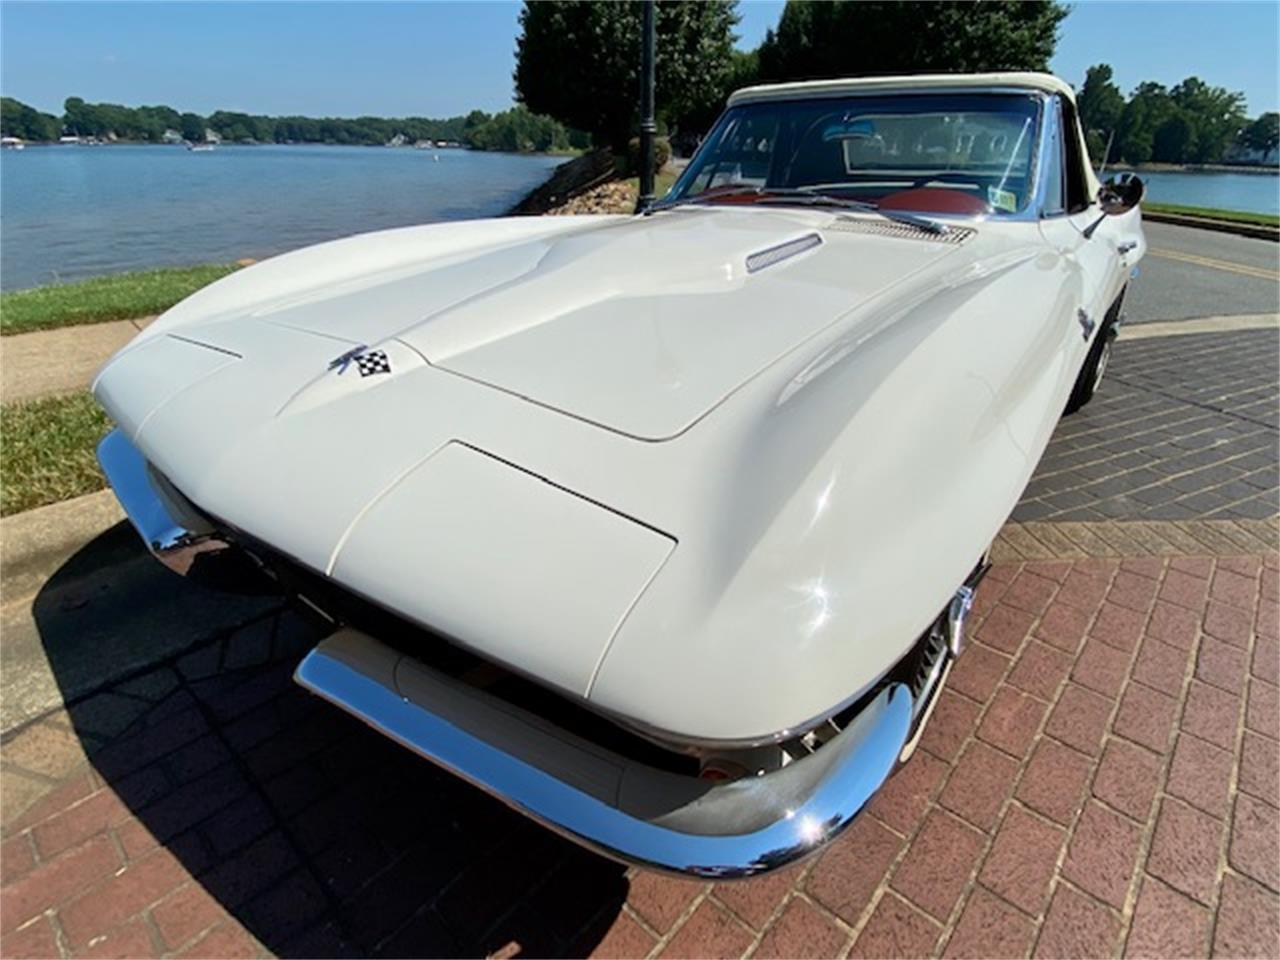 for sale 1965 chevrolet corvette in sherrills ford, north carolina cars - sherrills ford, nc at geebo